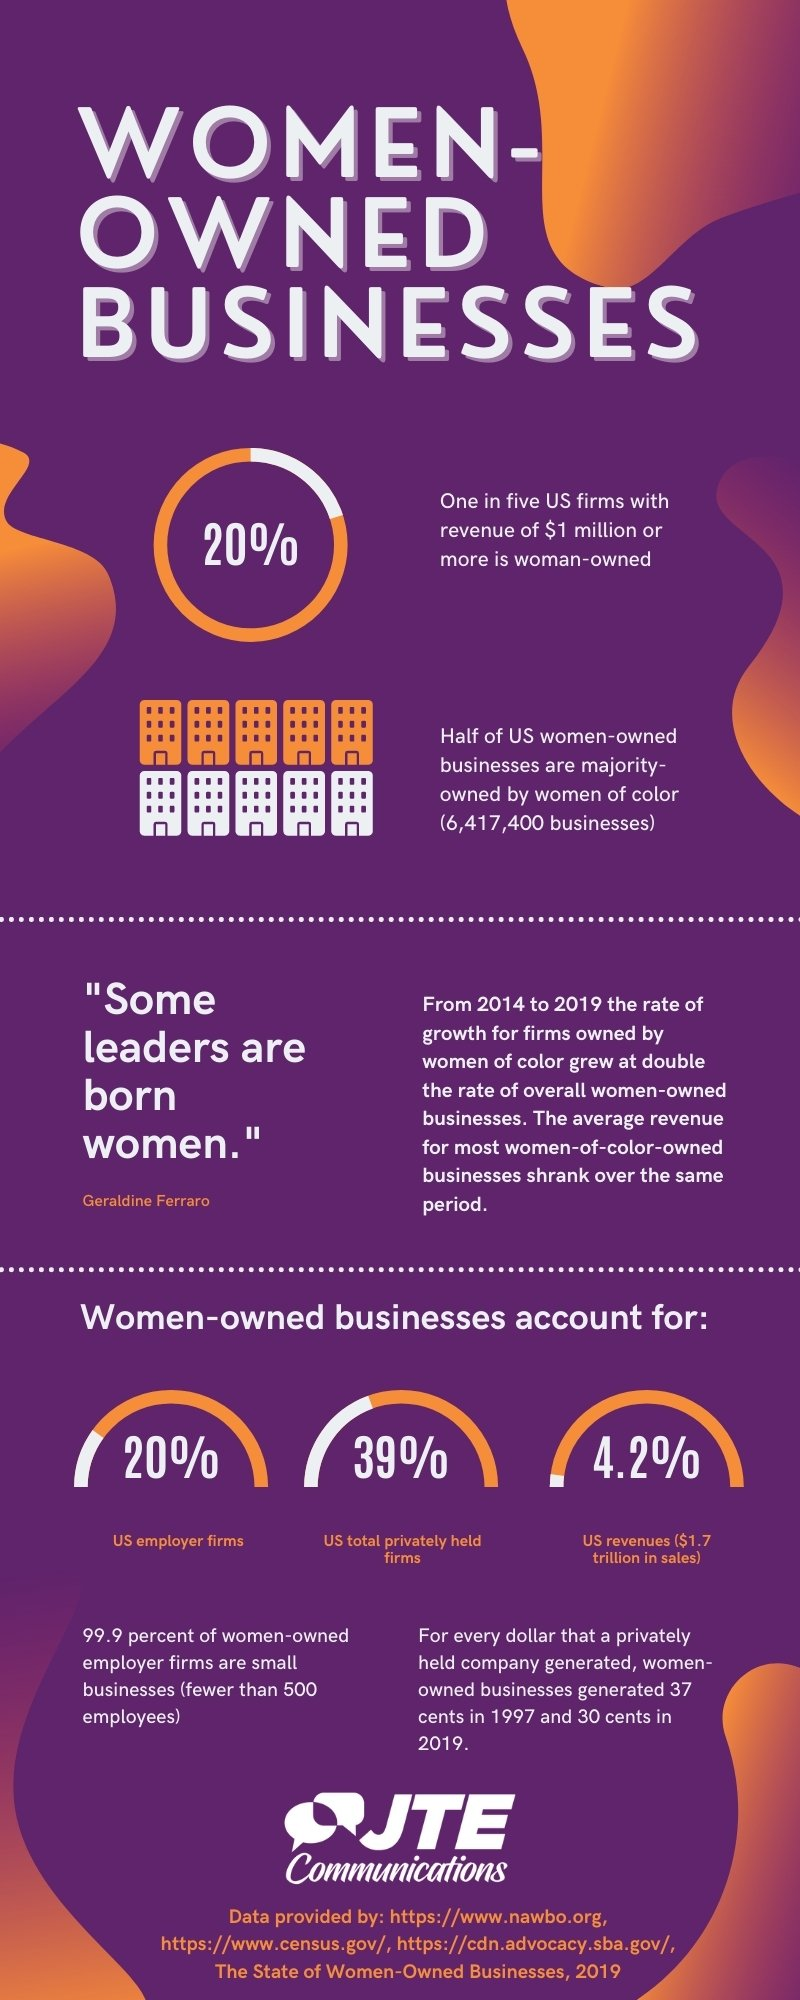 Infographic about women-owned businesses